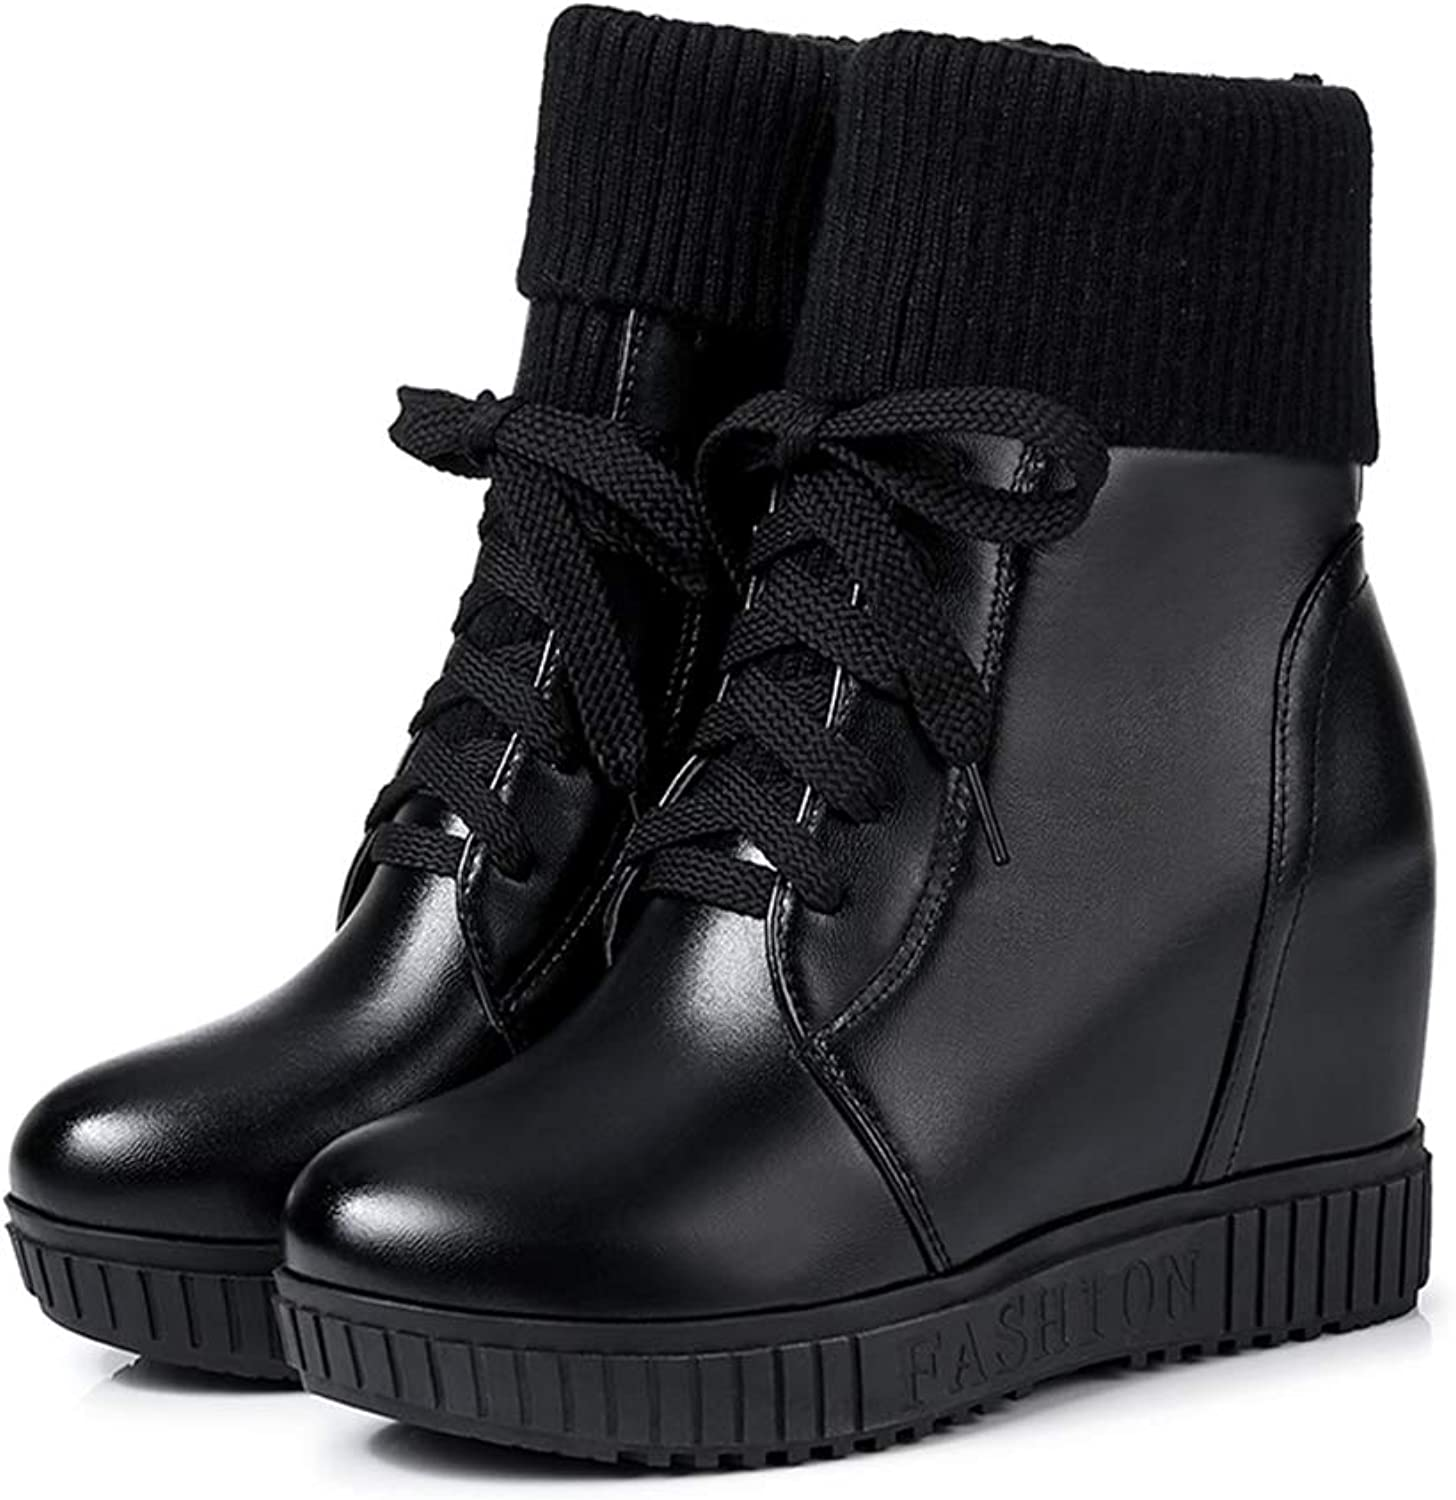 Woman Ankle Boots Lace Up Wedges Height Increasing Round Toe Lace Up Winter Platform Warm Antislip Snow Boots